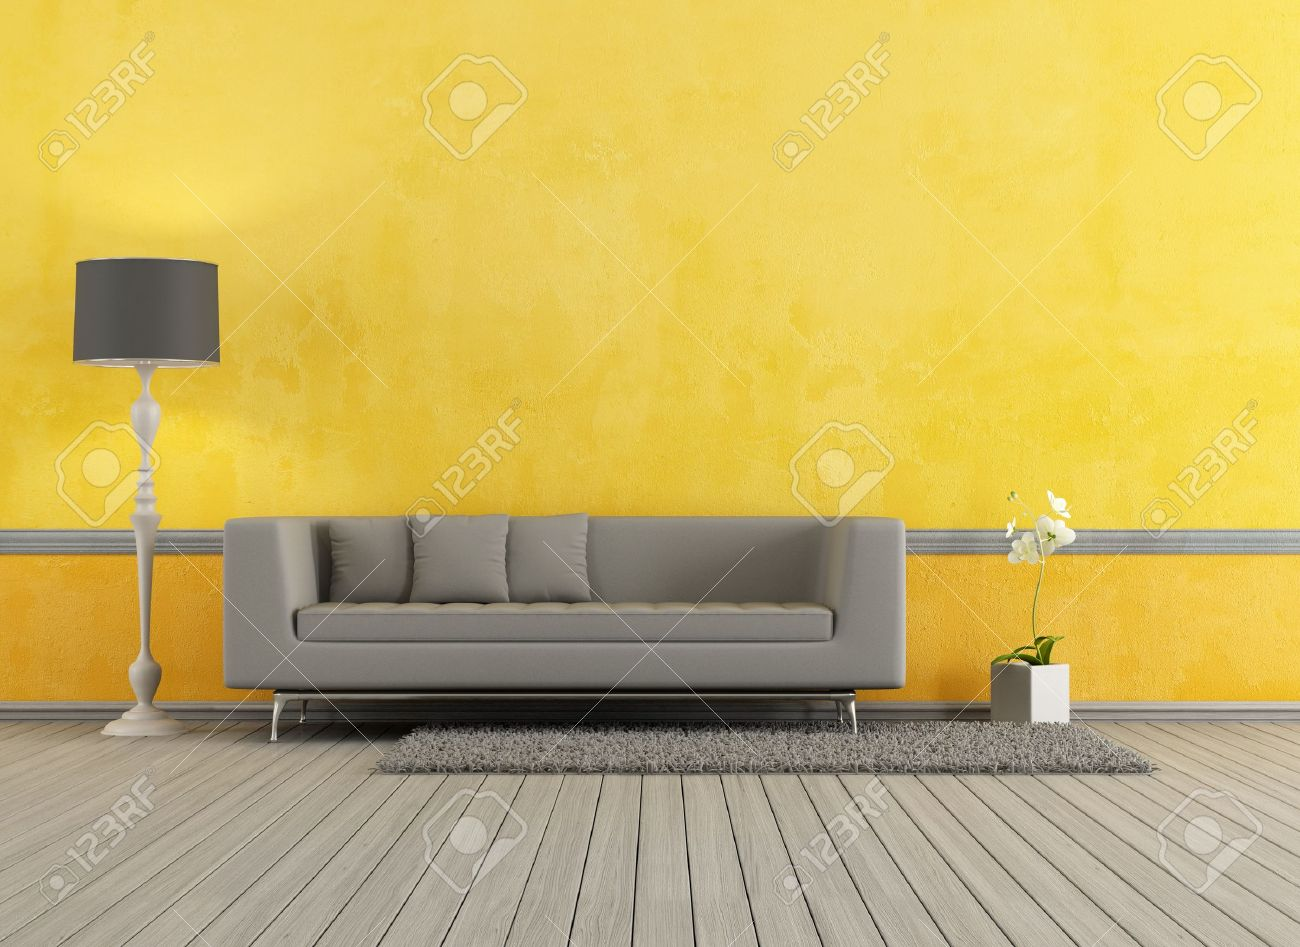 Gray Modern Sofa In A Yellow Living Room Rendering Stock Photo